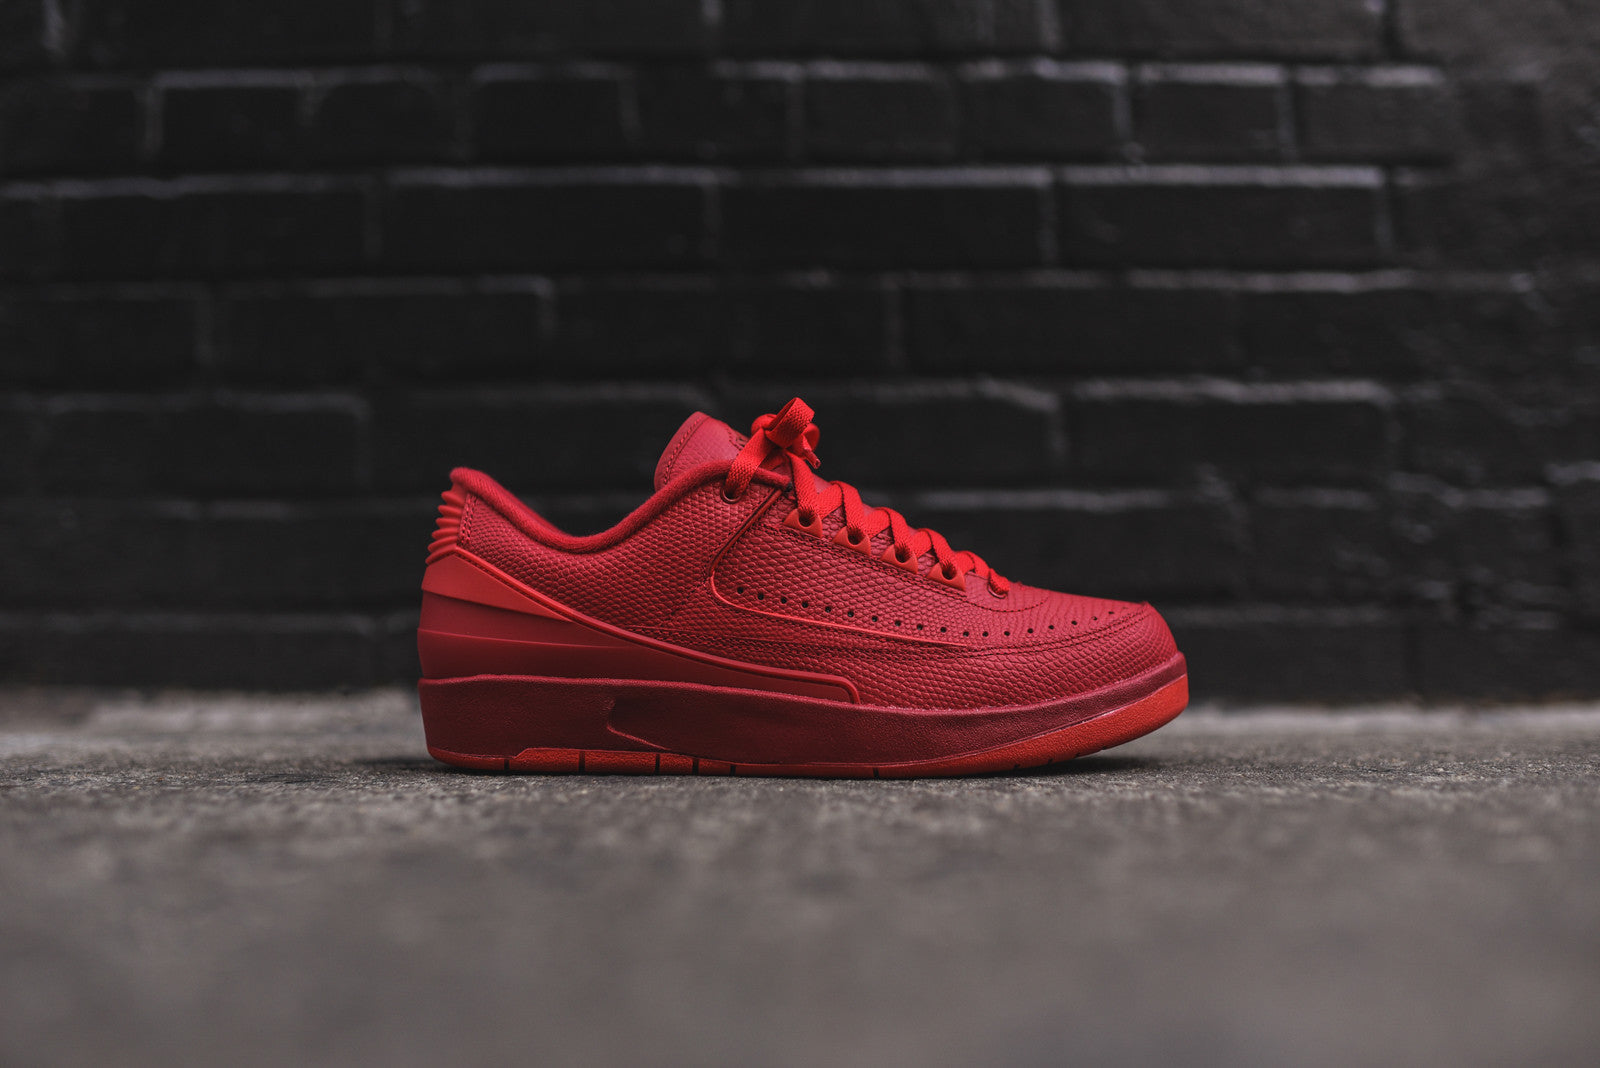 Nike Air Jordan II Low Retro - Gym Red